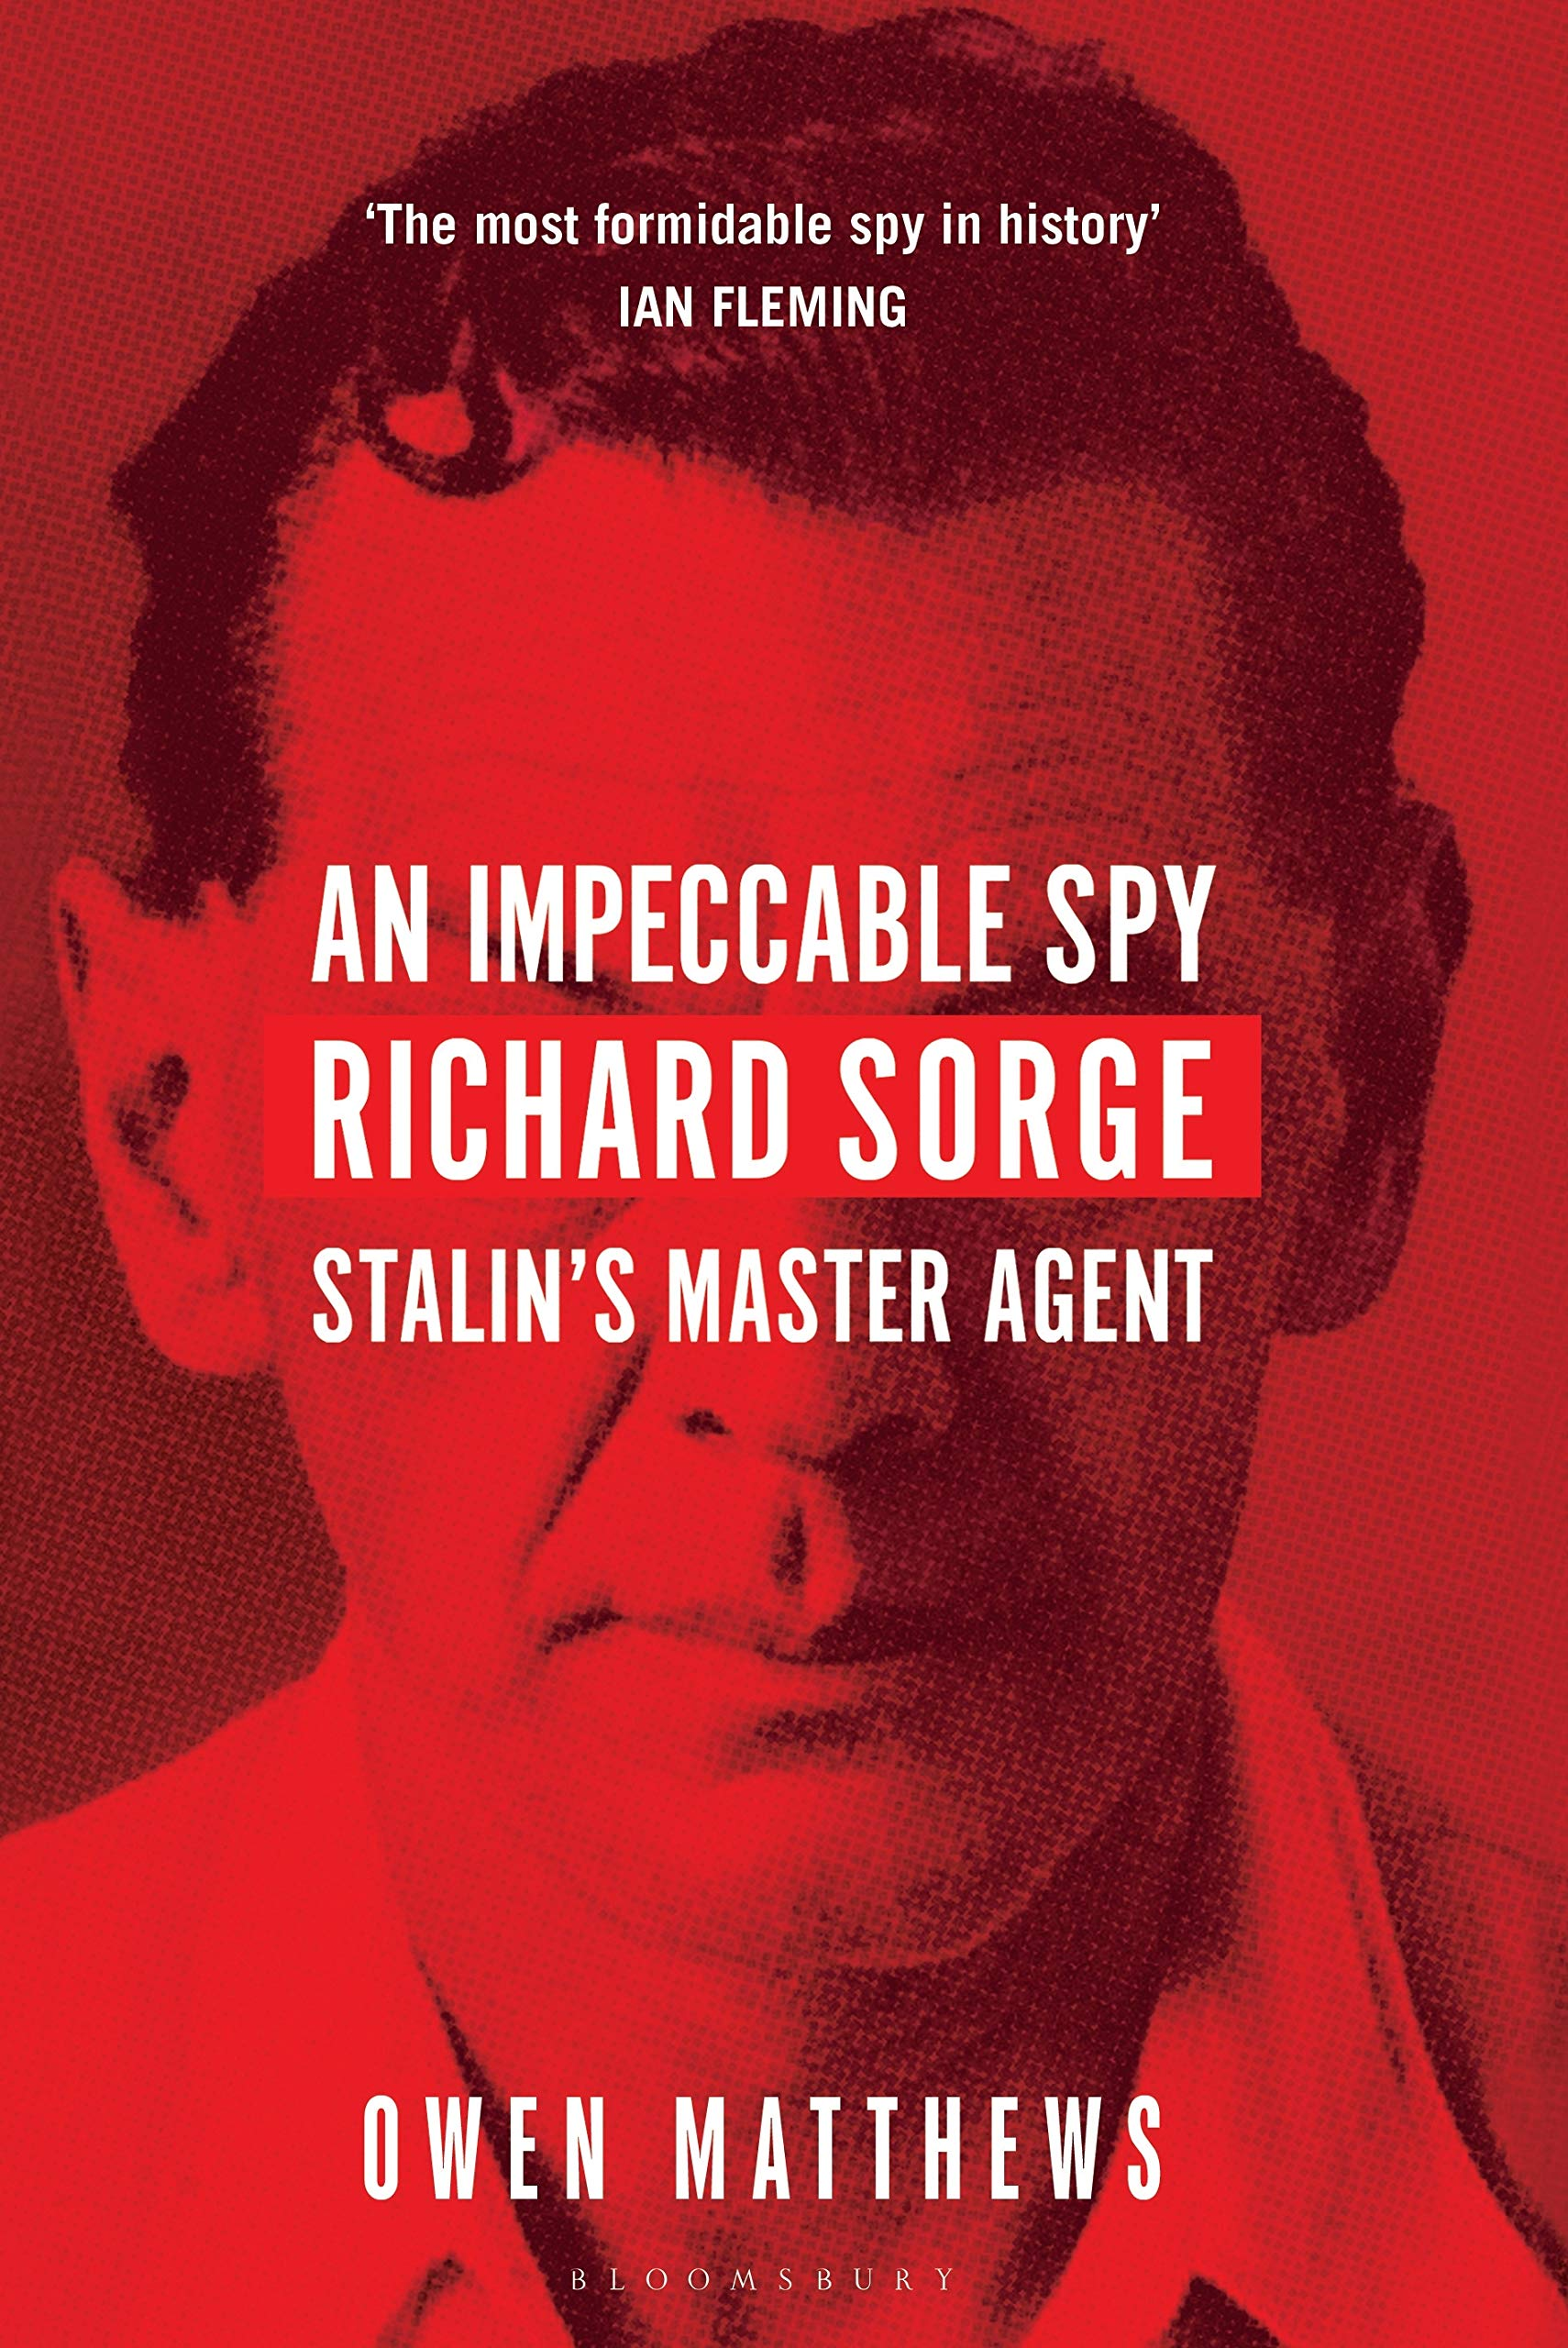 An Impeccable Spy: Richard Sorge Stalin's Master Agent